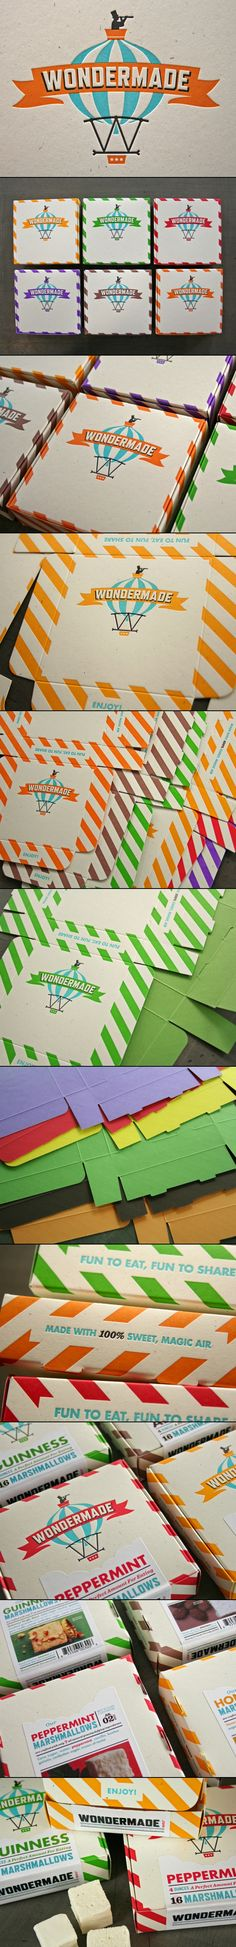 Another oldie but goodie beautiful letterpress #packaging #design for Wondermade Marshmallows by Studio on Fire PD